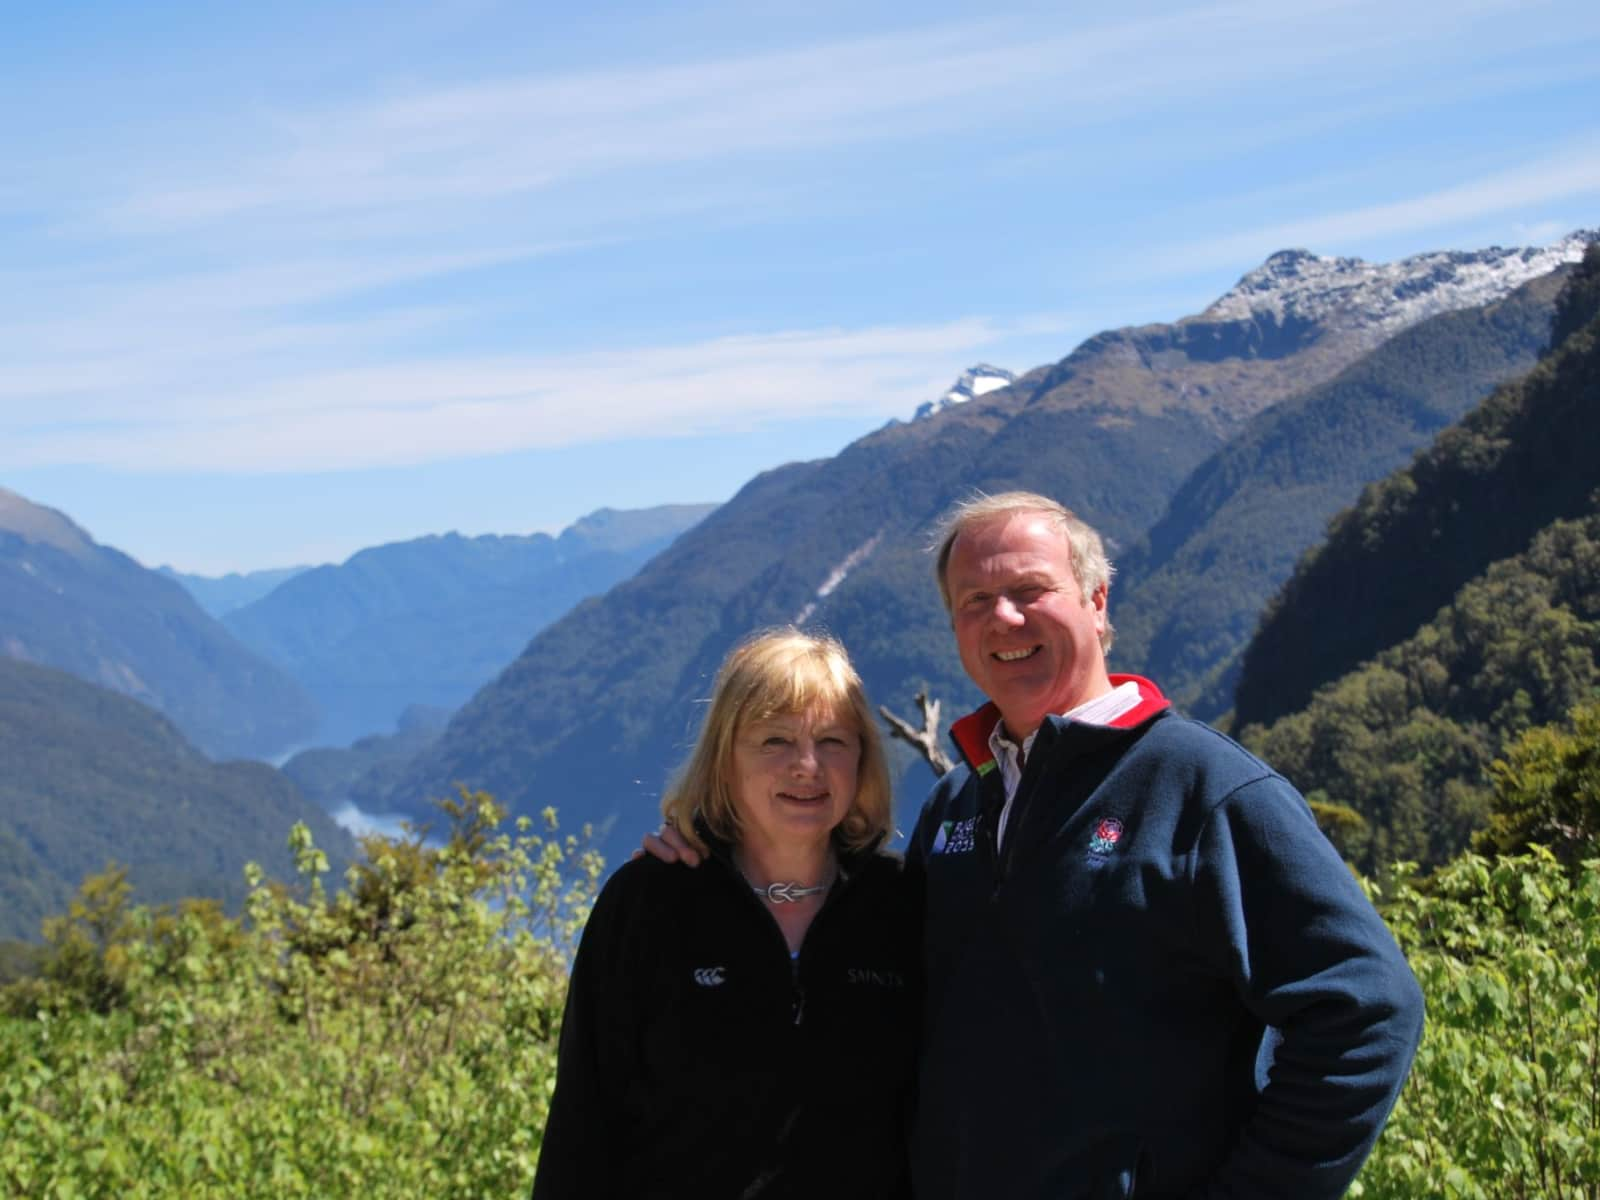 Peter & Lindy from Northampton, United Kingdom